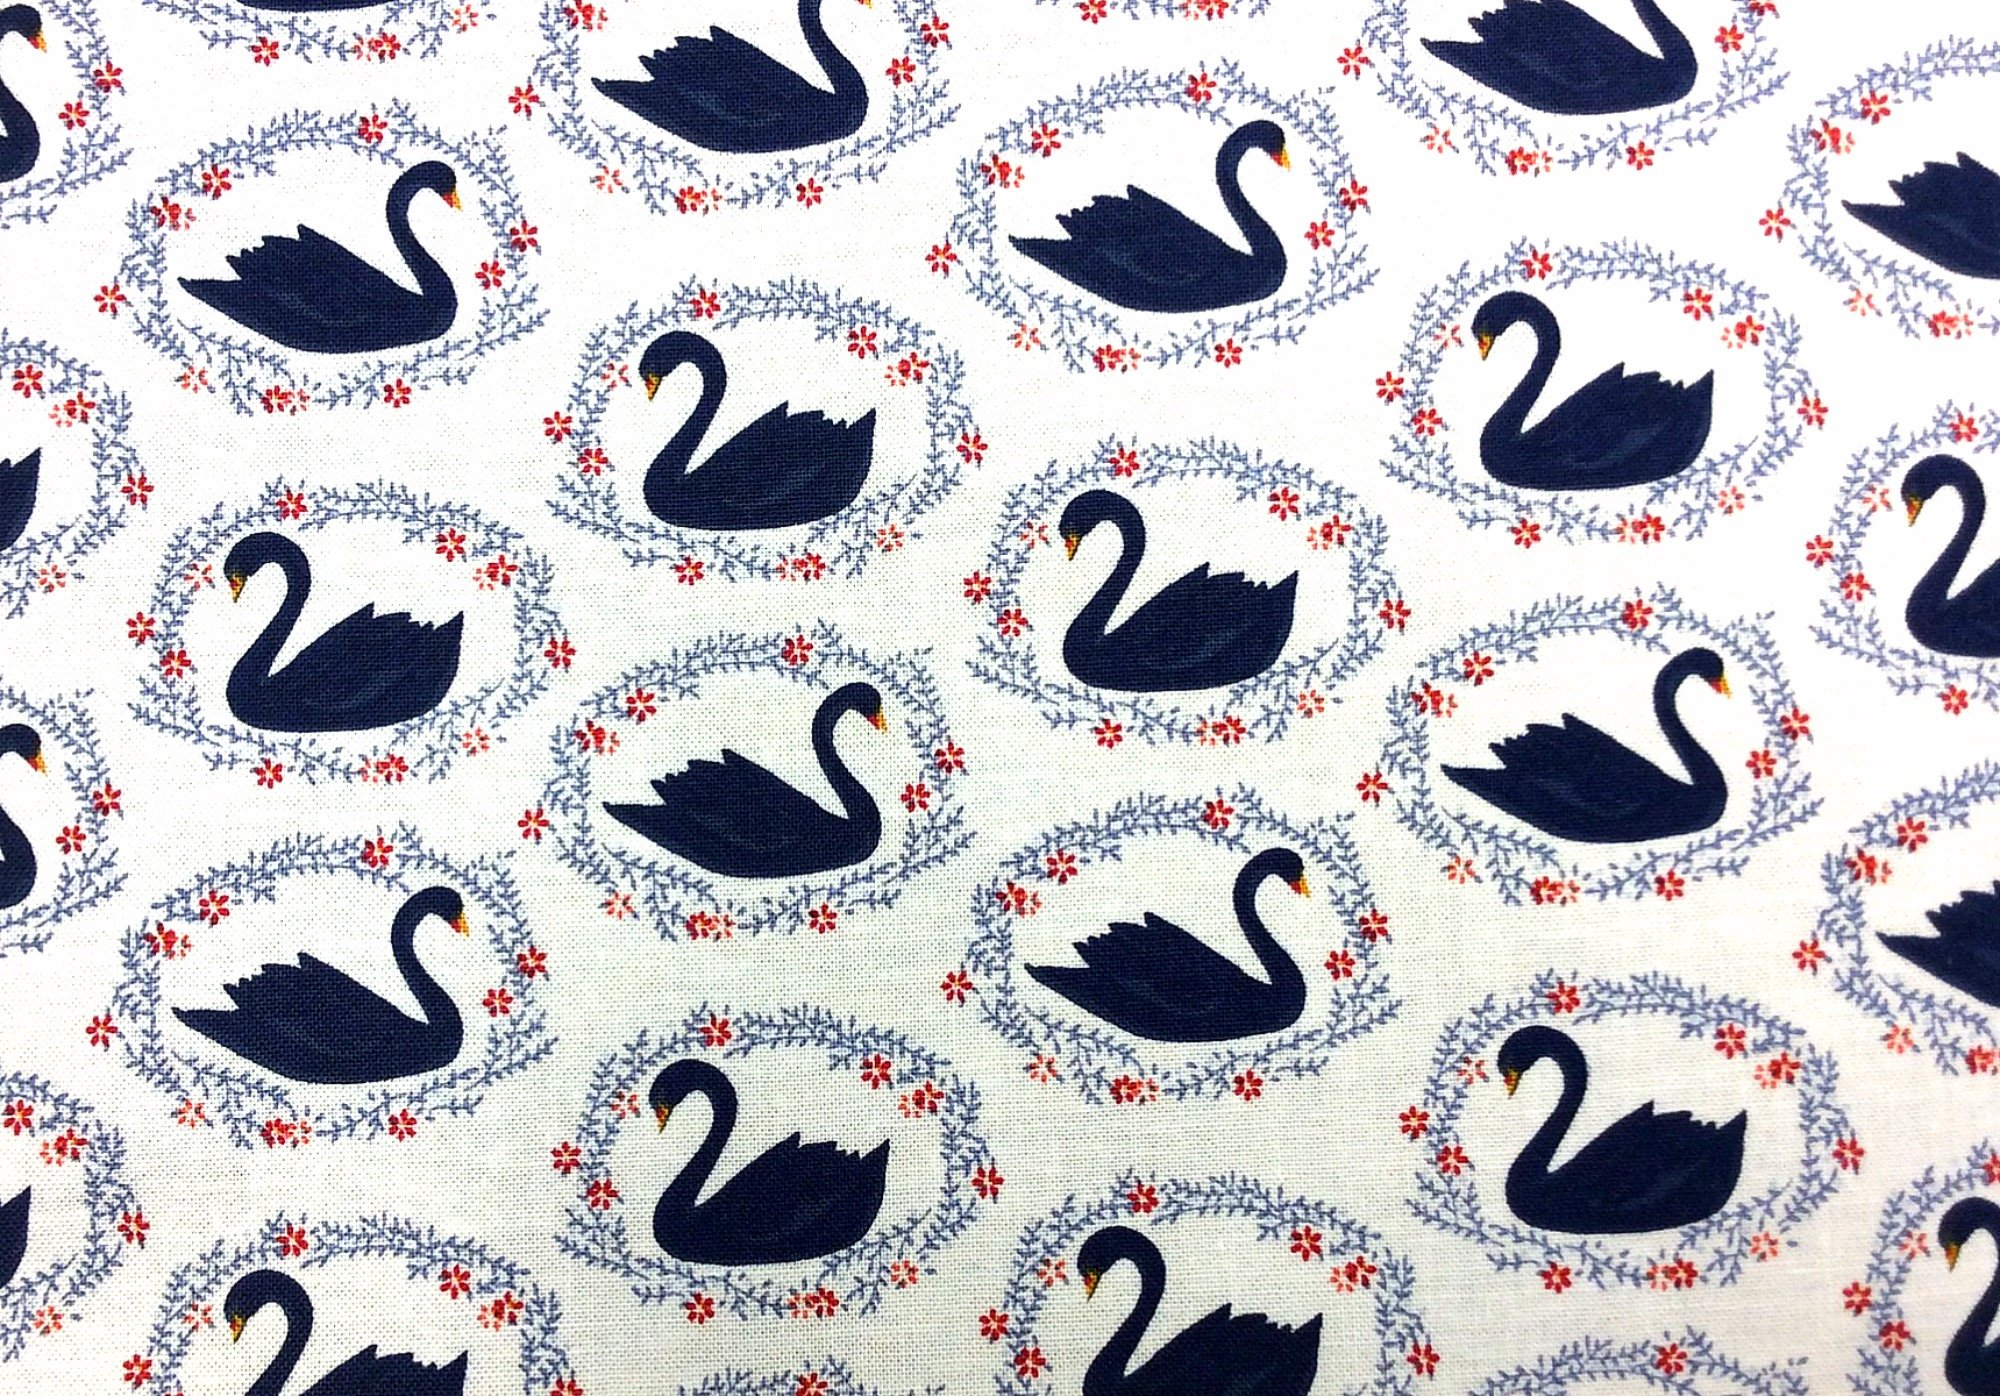 Black Swan Retro Water Birds Ballet Illustrated Swans Cotton Quilt Fabric FT153